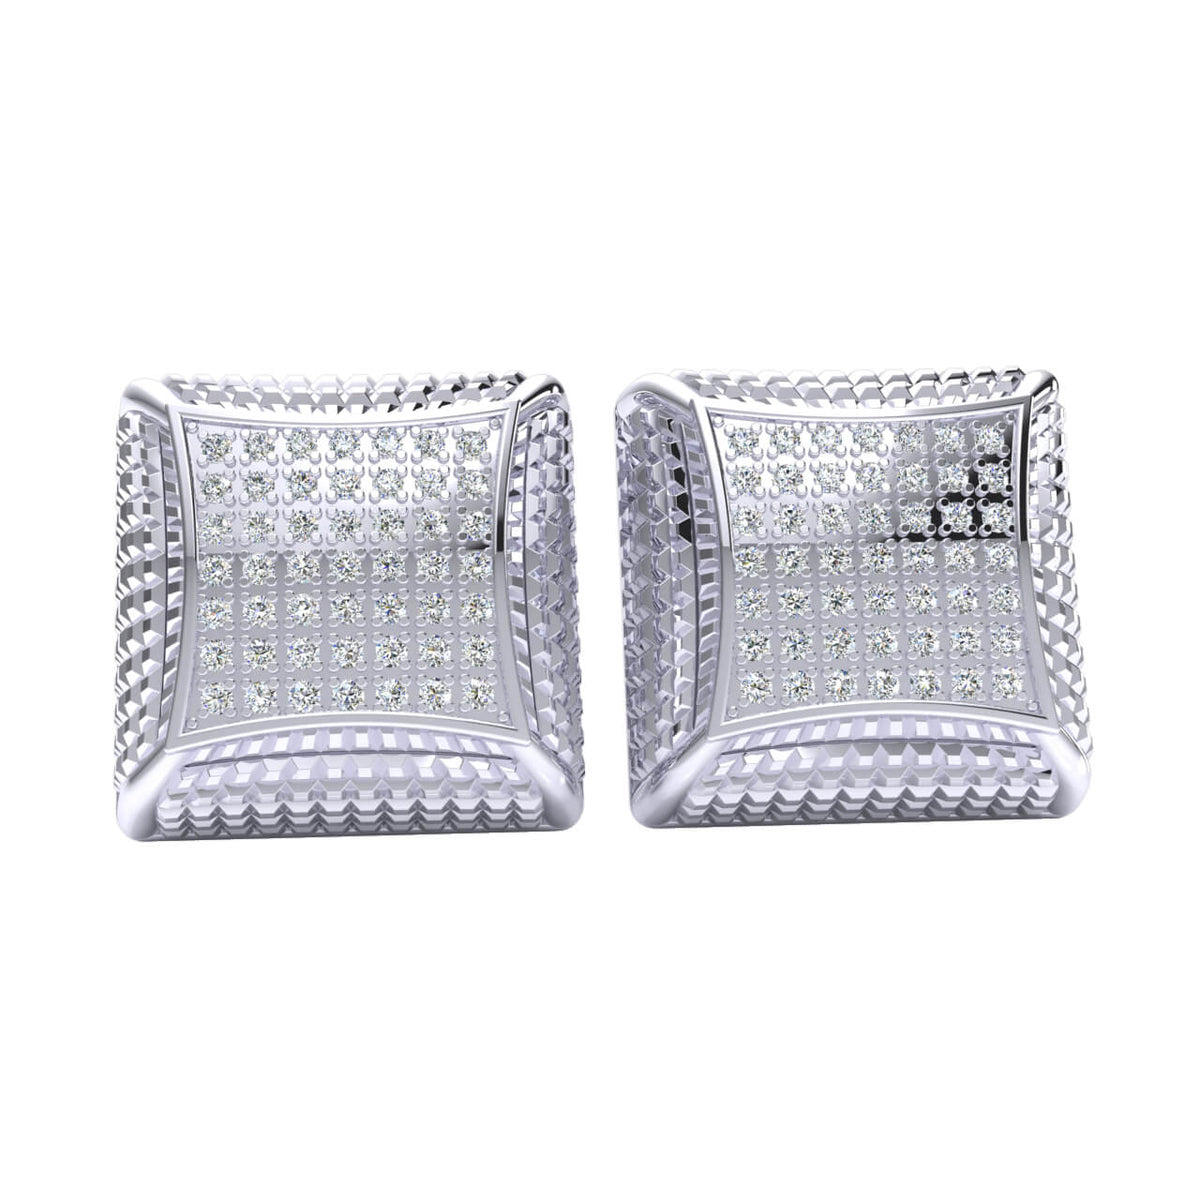 0.45 Ct Round GH I1-I2 Diamond Box Square Cluster Unisex Stud Earrings 925 Sterling Silver